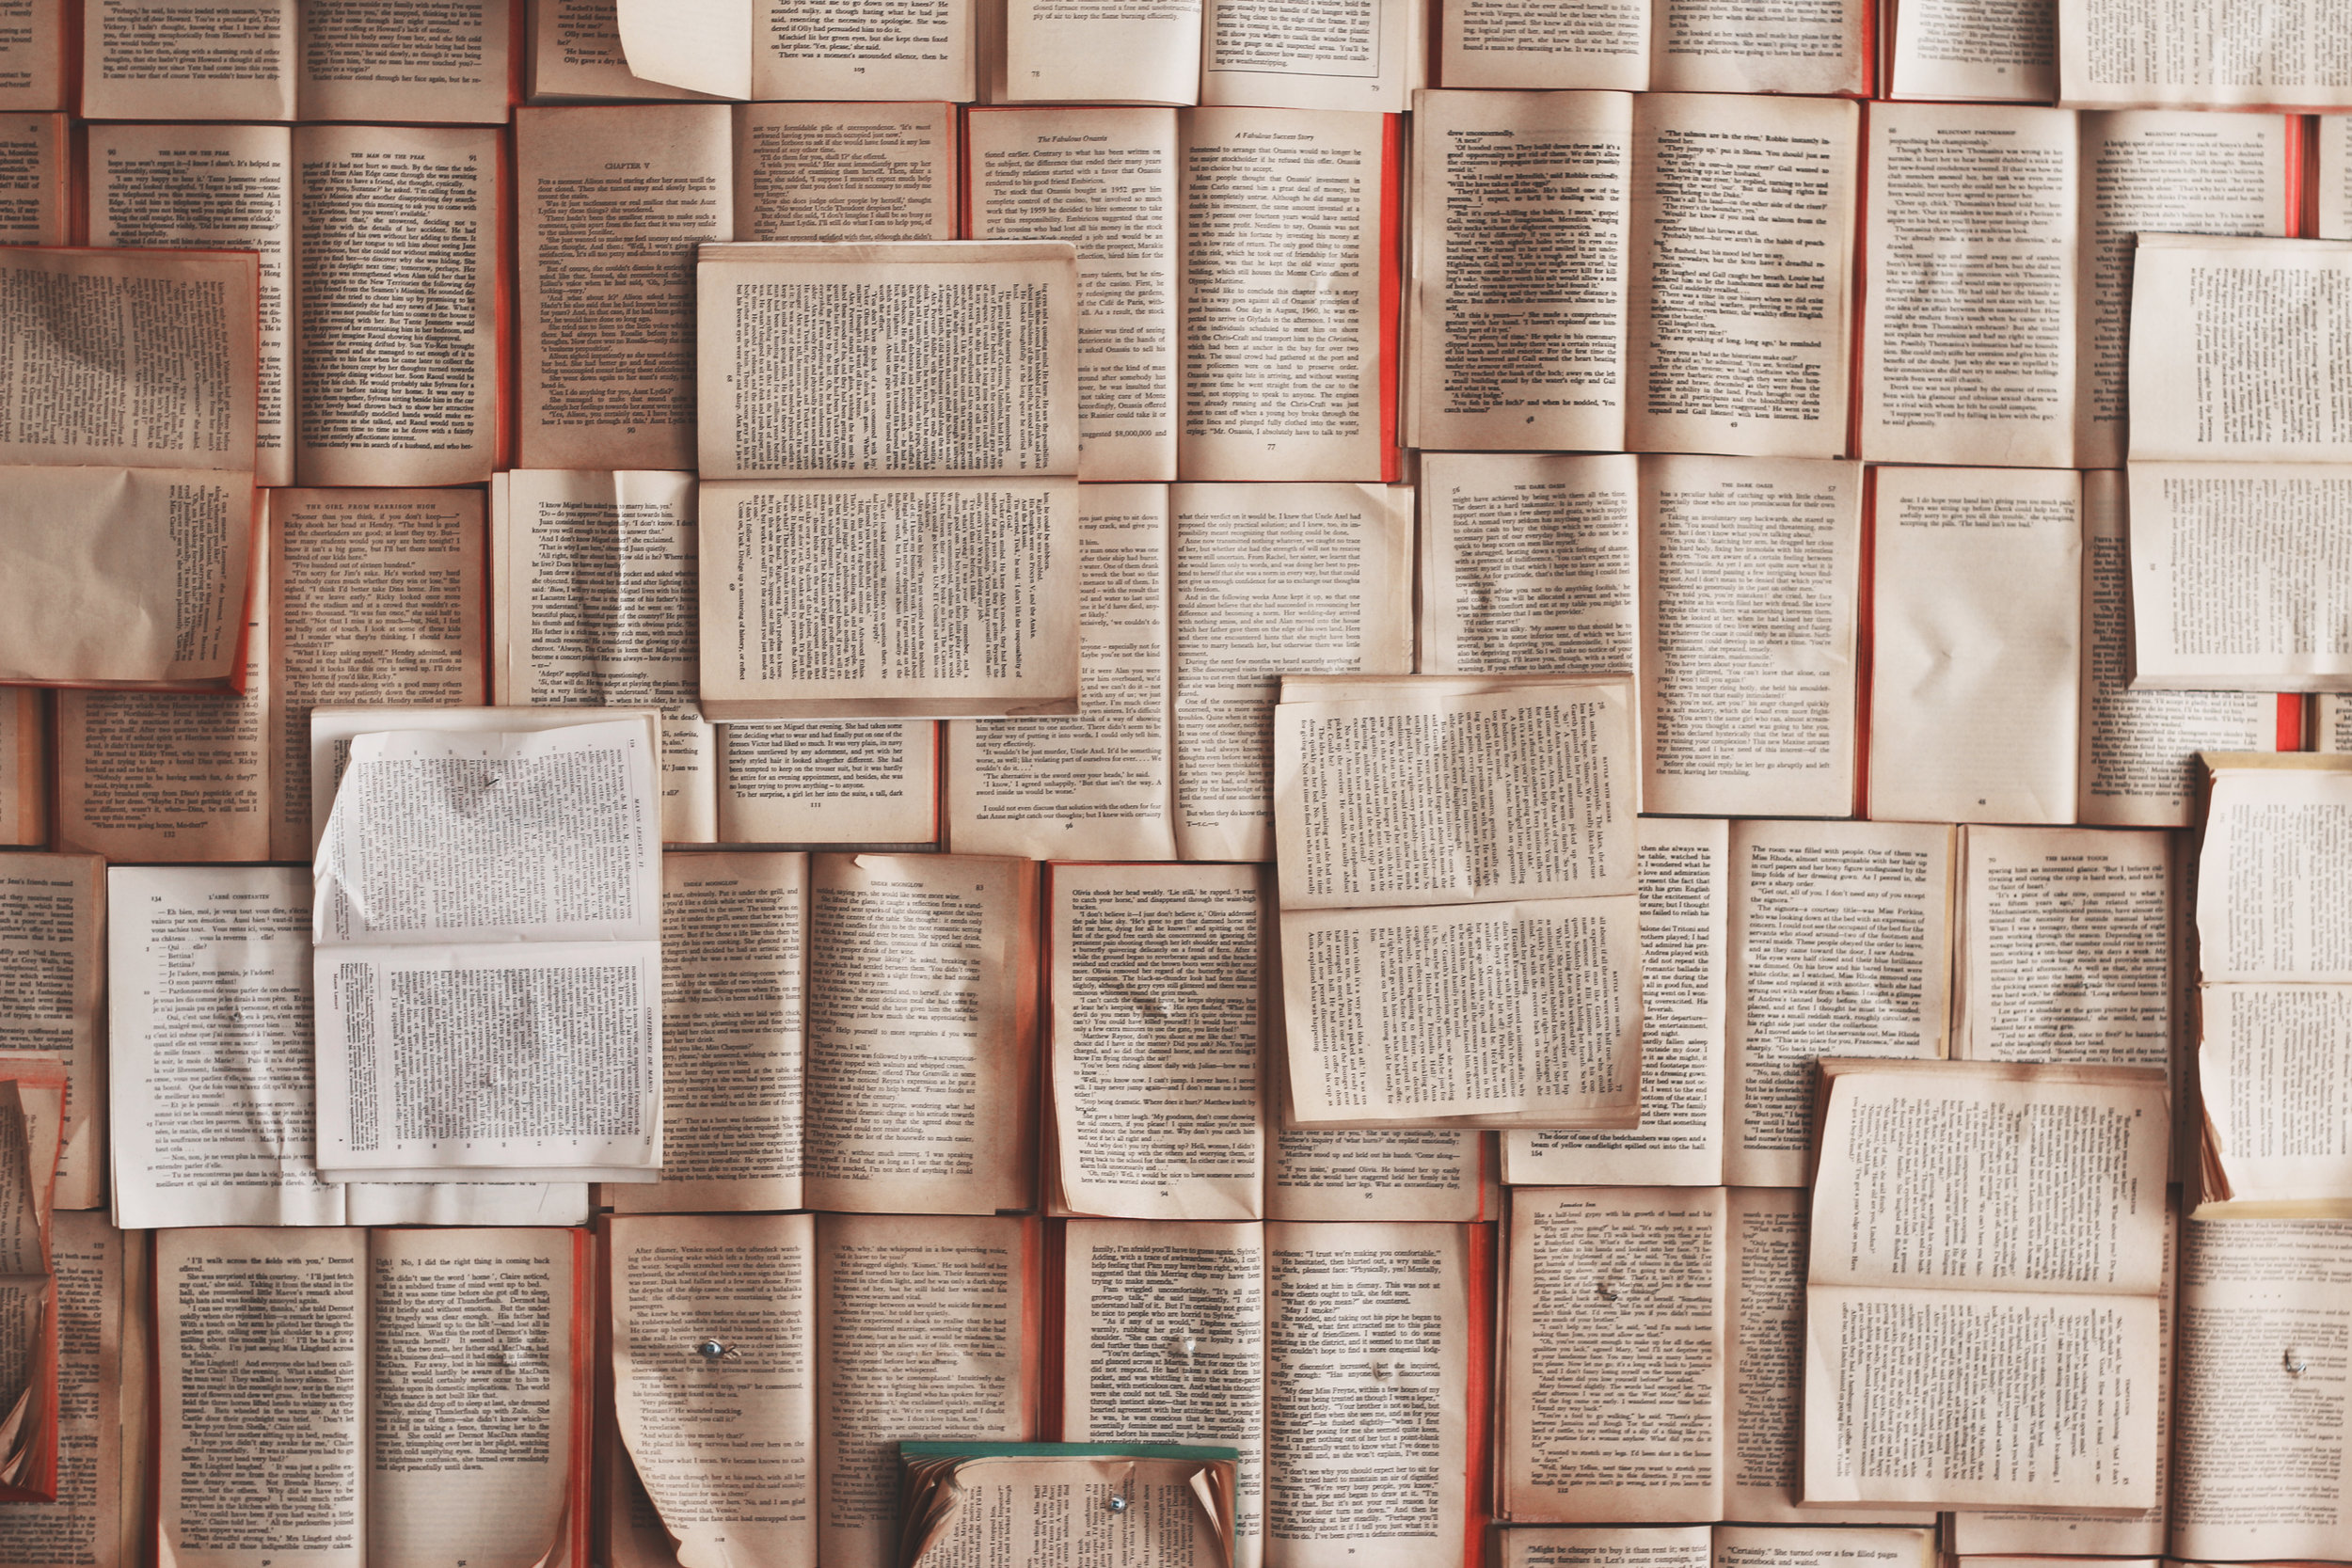 What We Love - Gently Used FictionGently Used Non-FictionGently Used Children's BooksGently Used Classics and Vintage TitlesGently Used Books Published Within the Last Ten Years